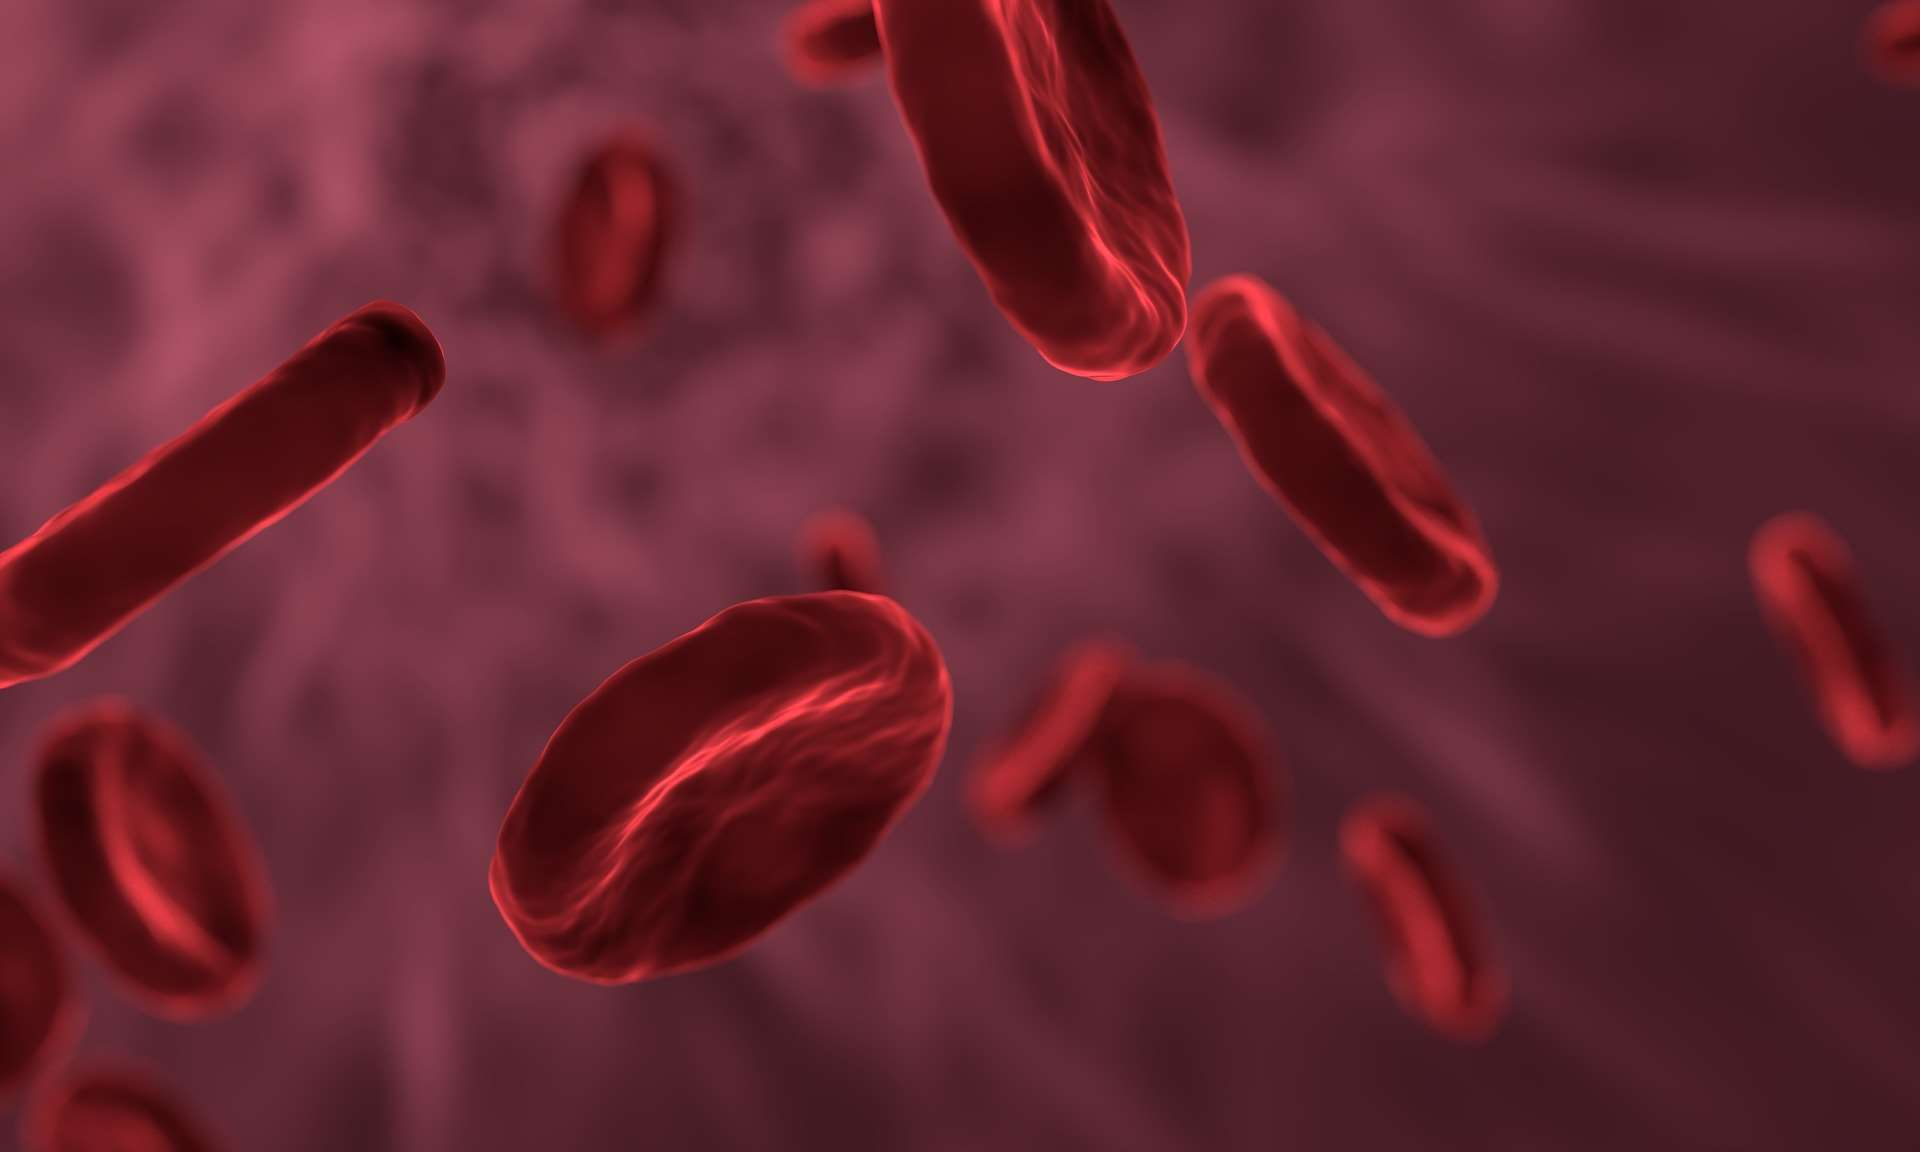 red-blood-cells-3188223_1920